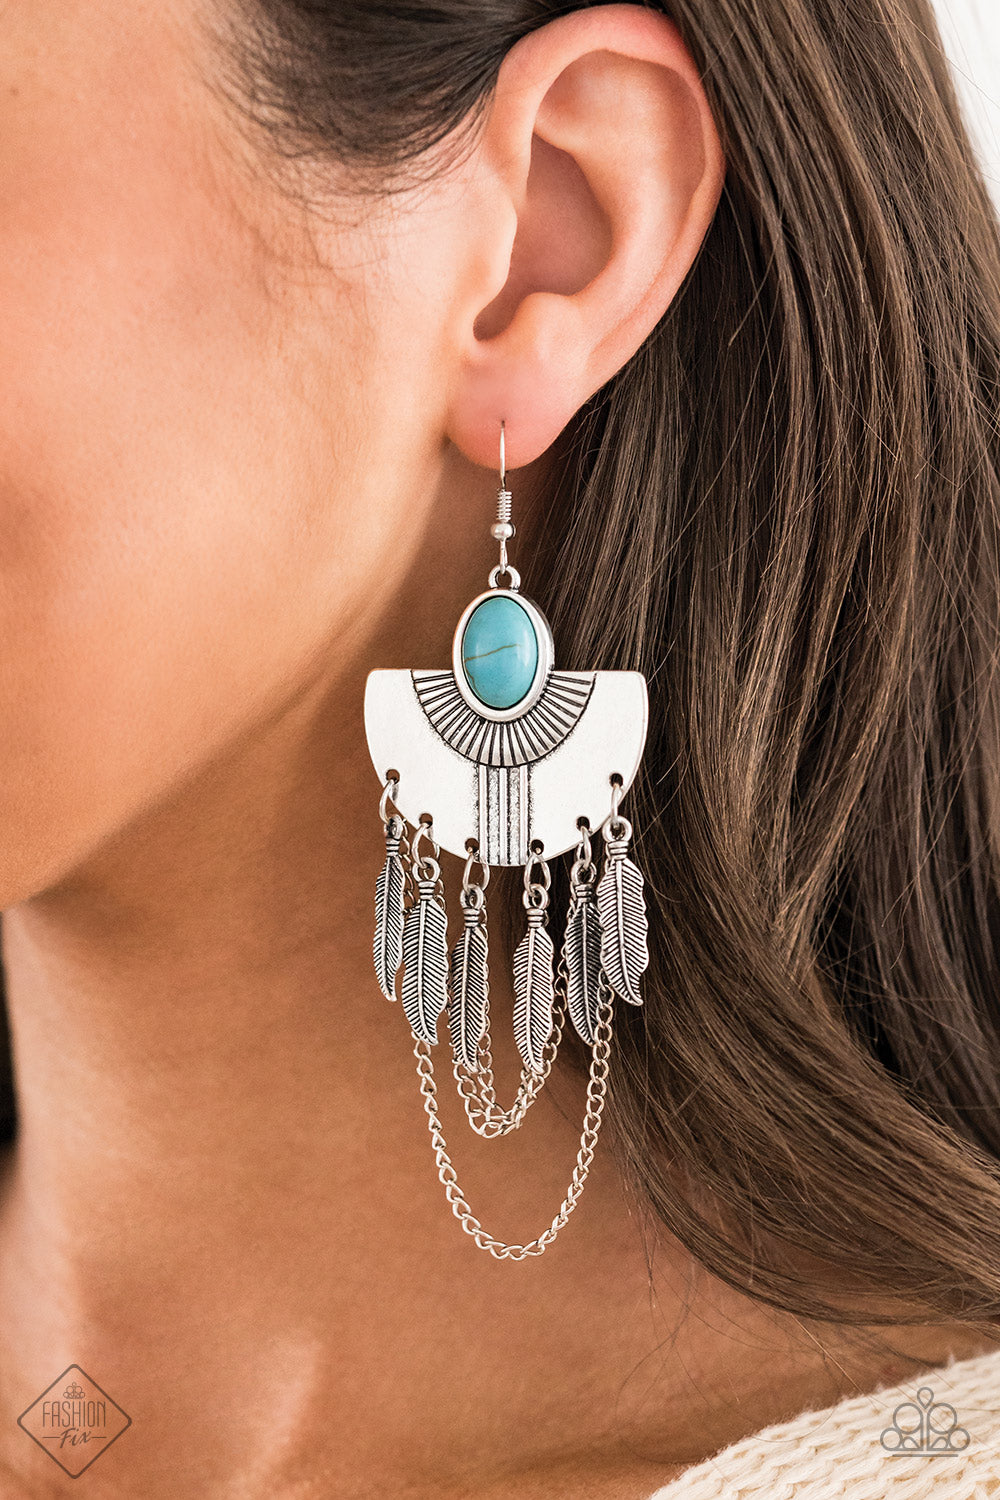 Paparazzi Accessories Sure Thing Chief! - Blue Earrings - Lady T Accessories